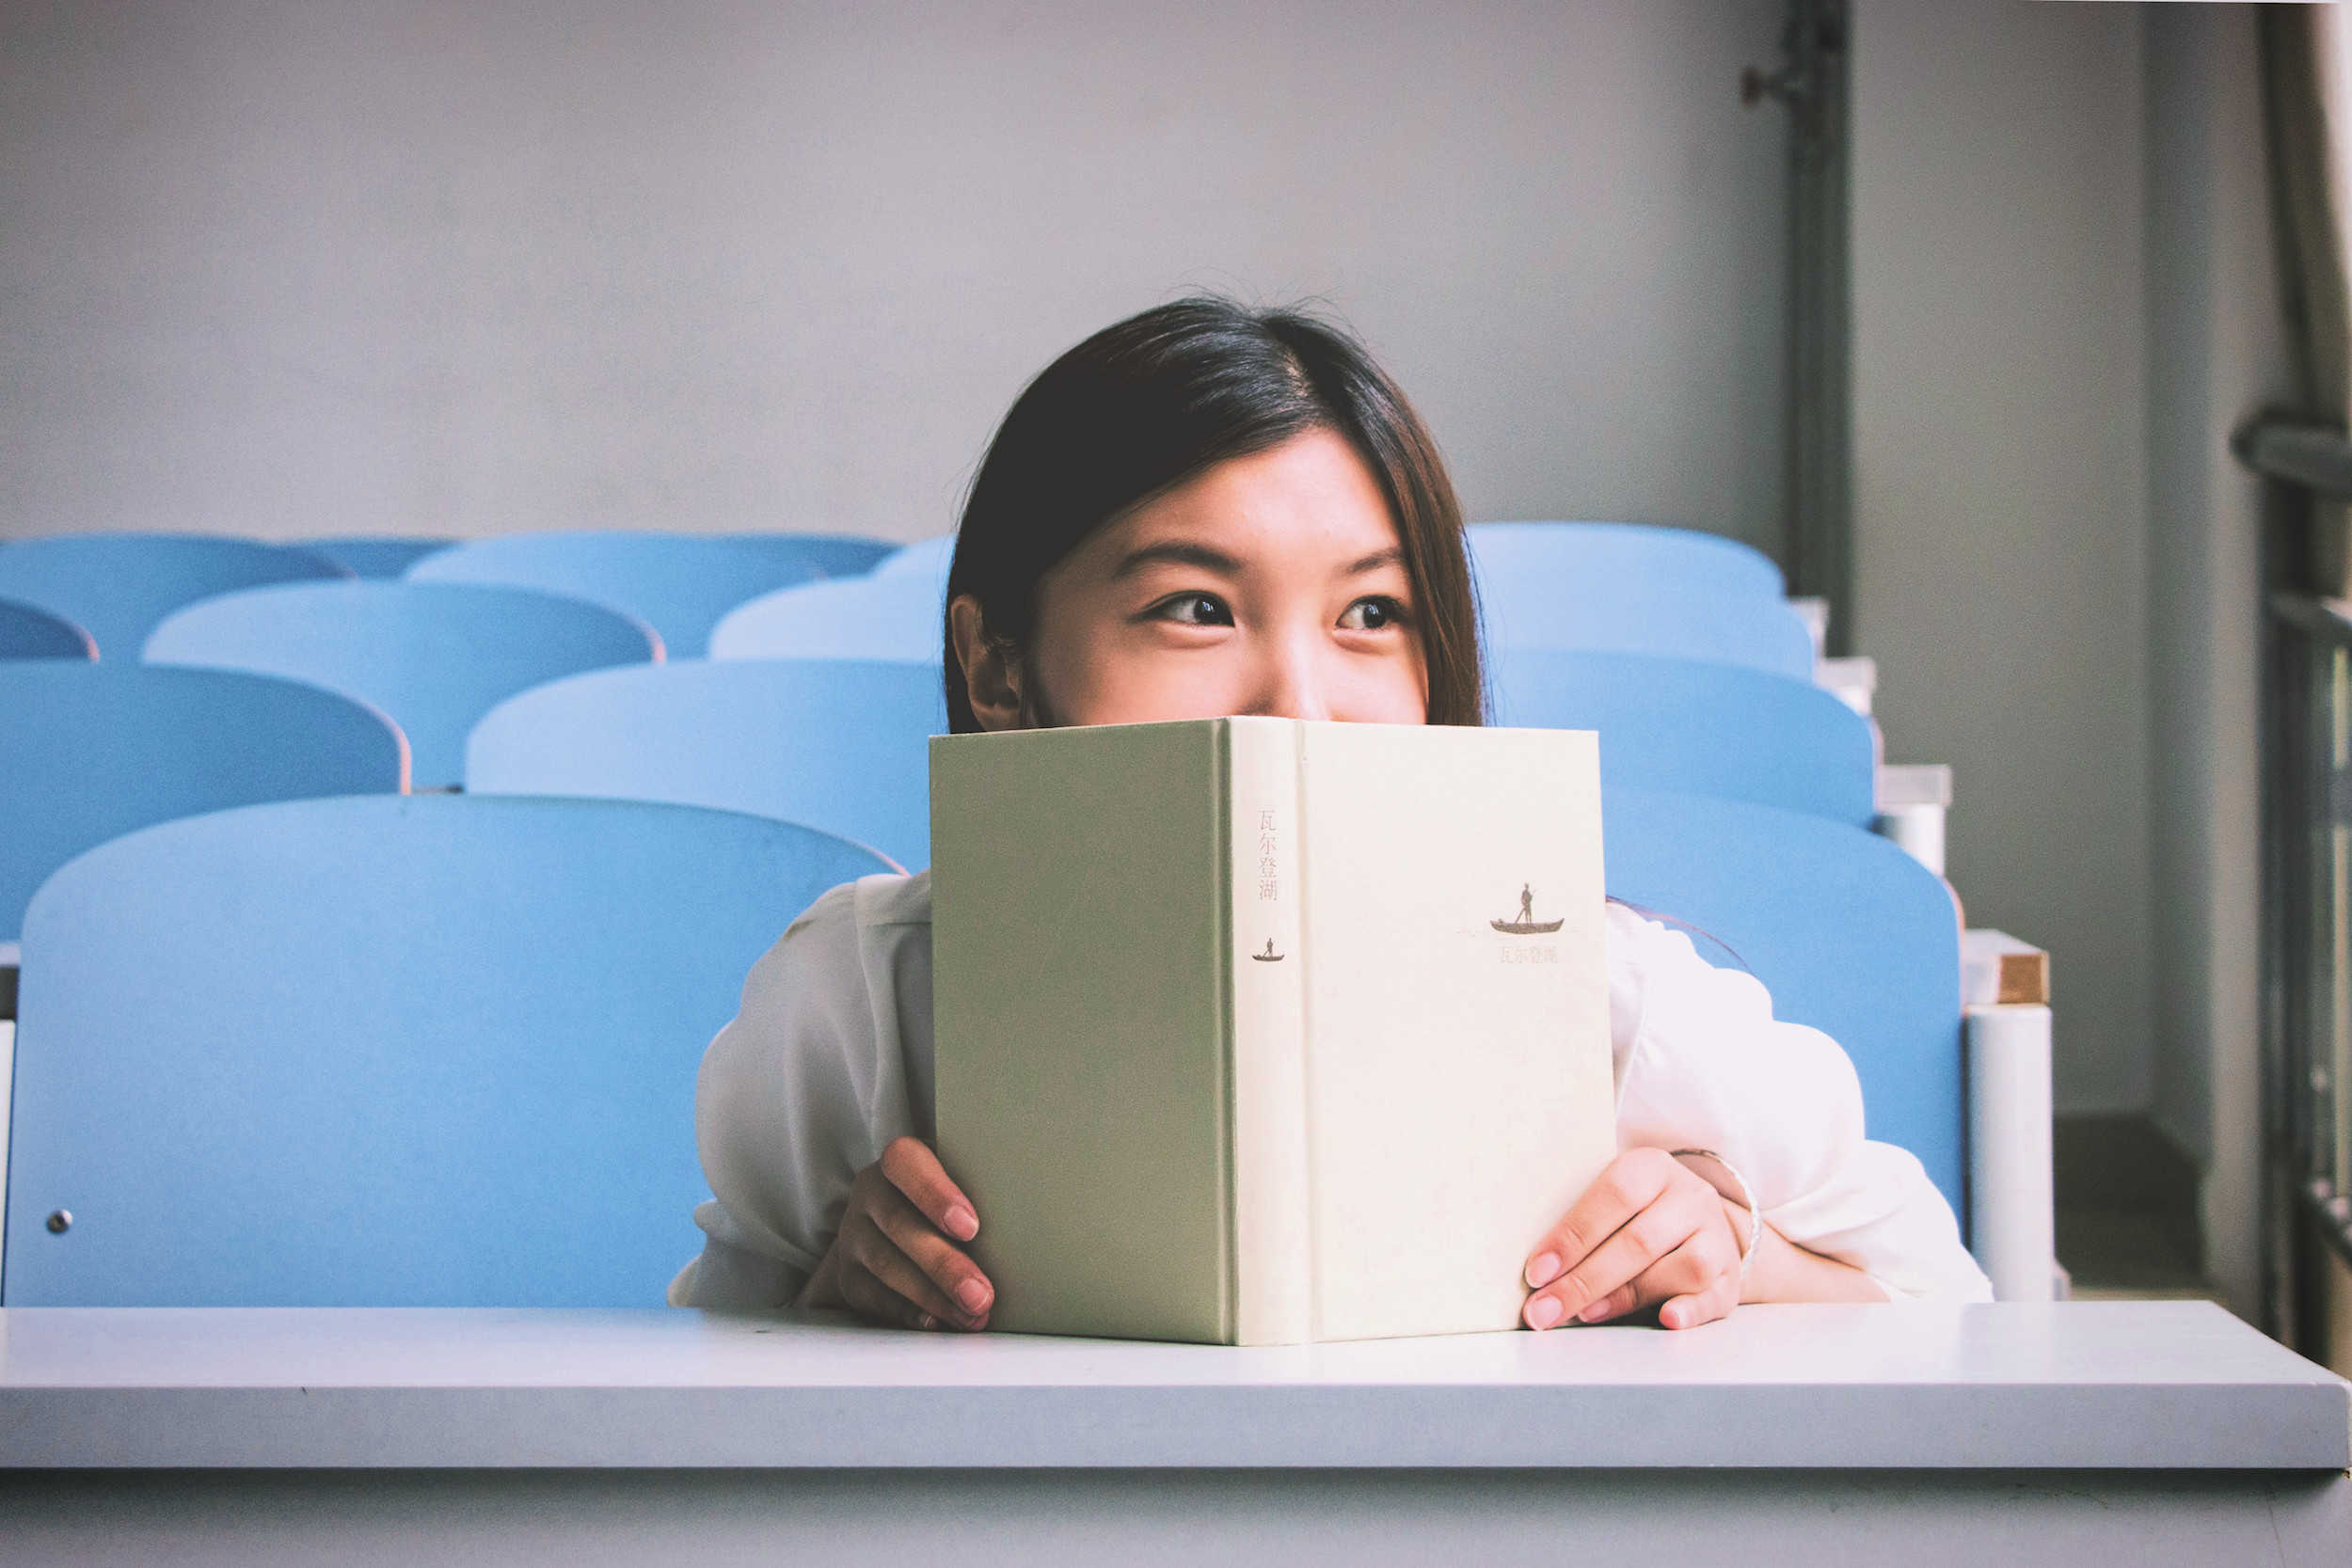 How the desire to educate can make you better at sales